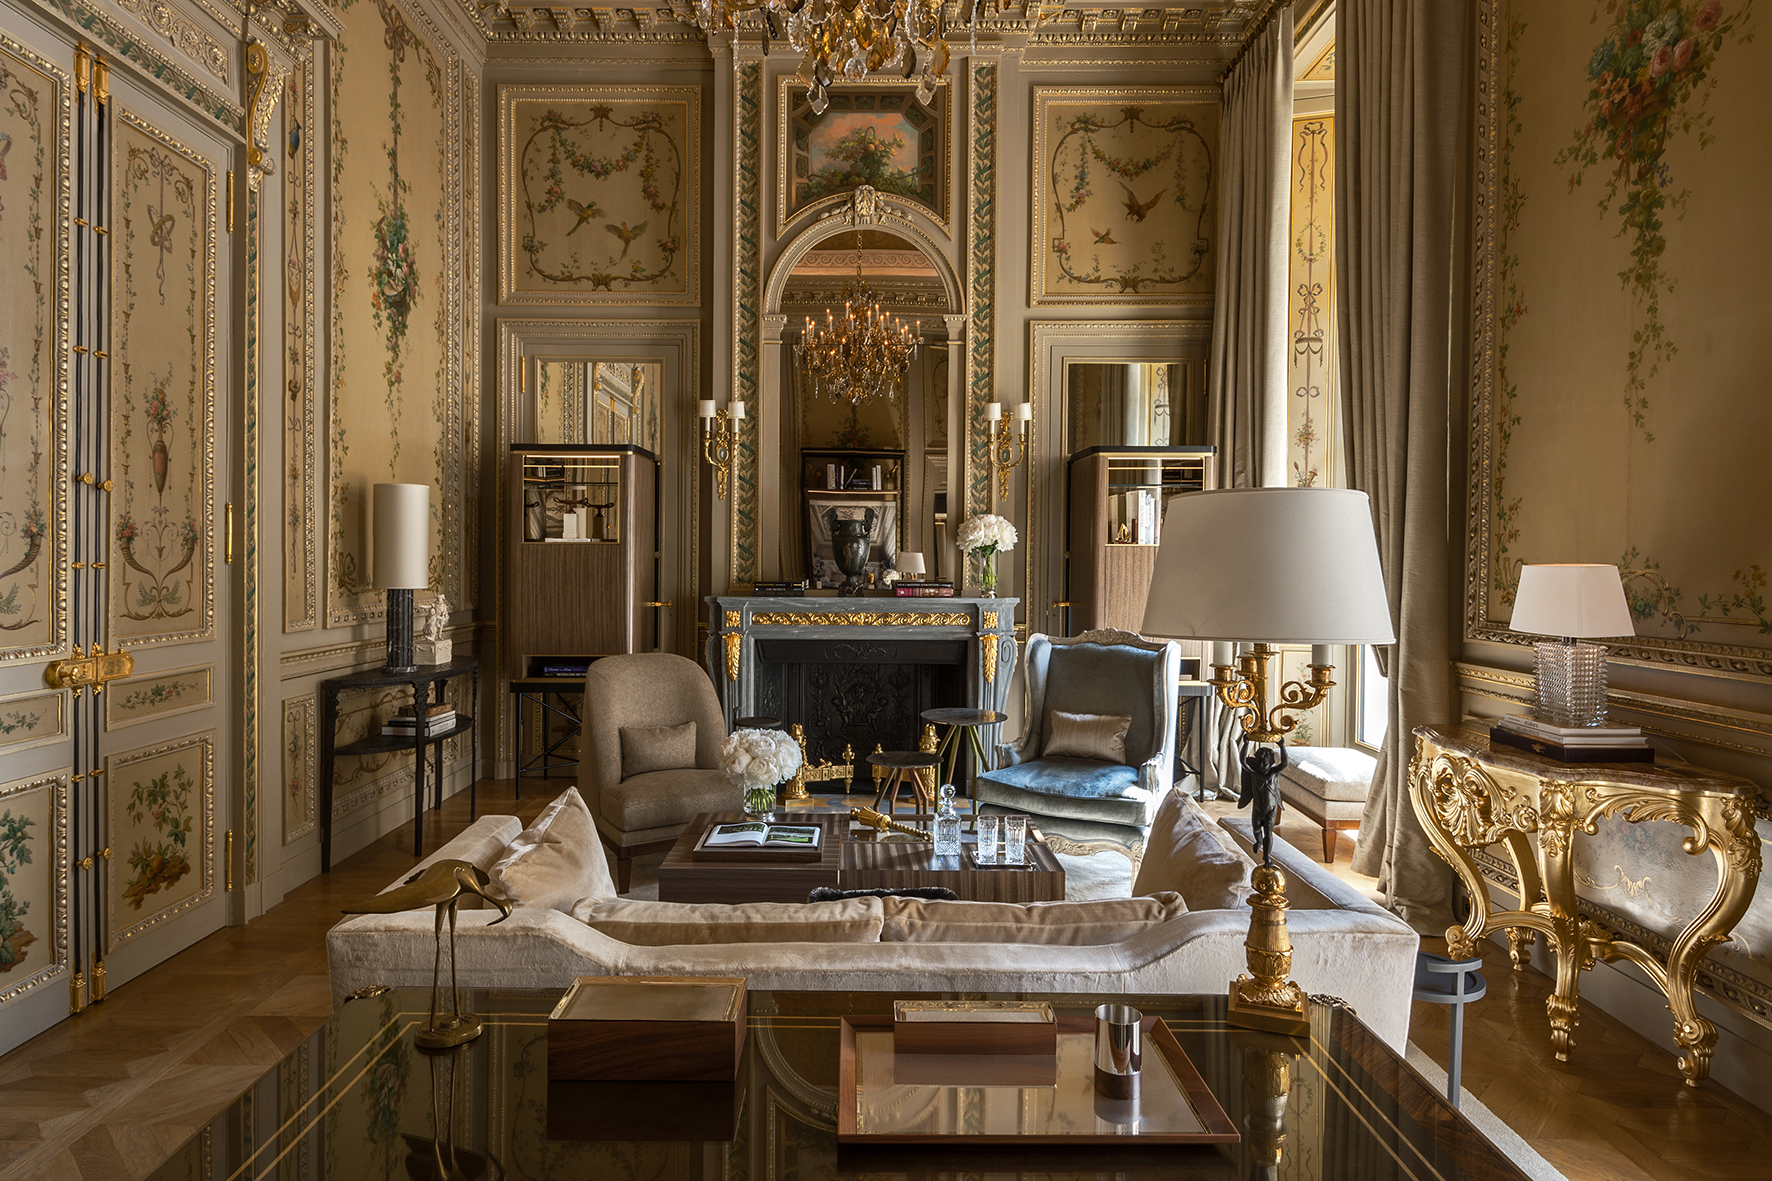 Luxury Hotel Paris 5 Star Hotel In Paris Hôtel De Crillon A Rosewood Hotel